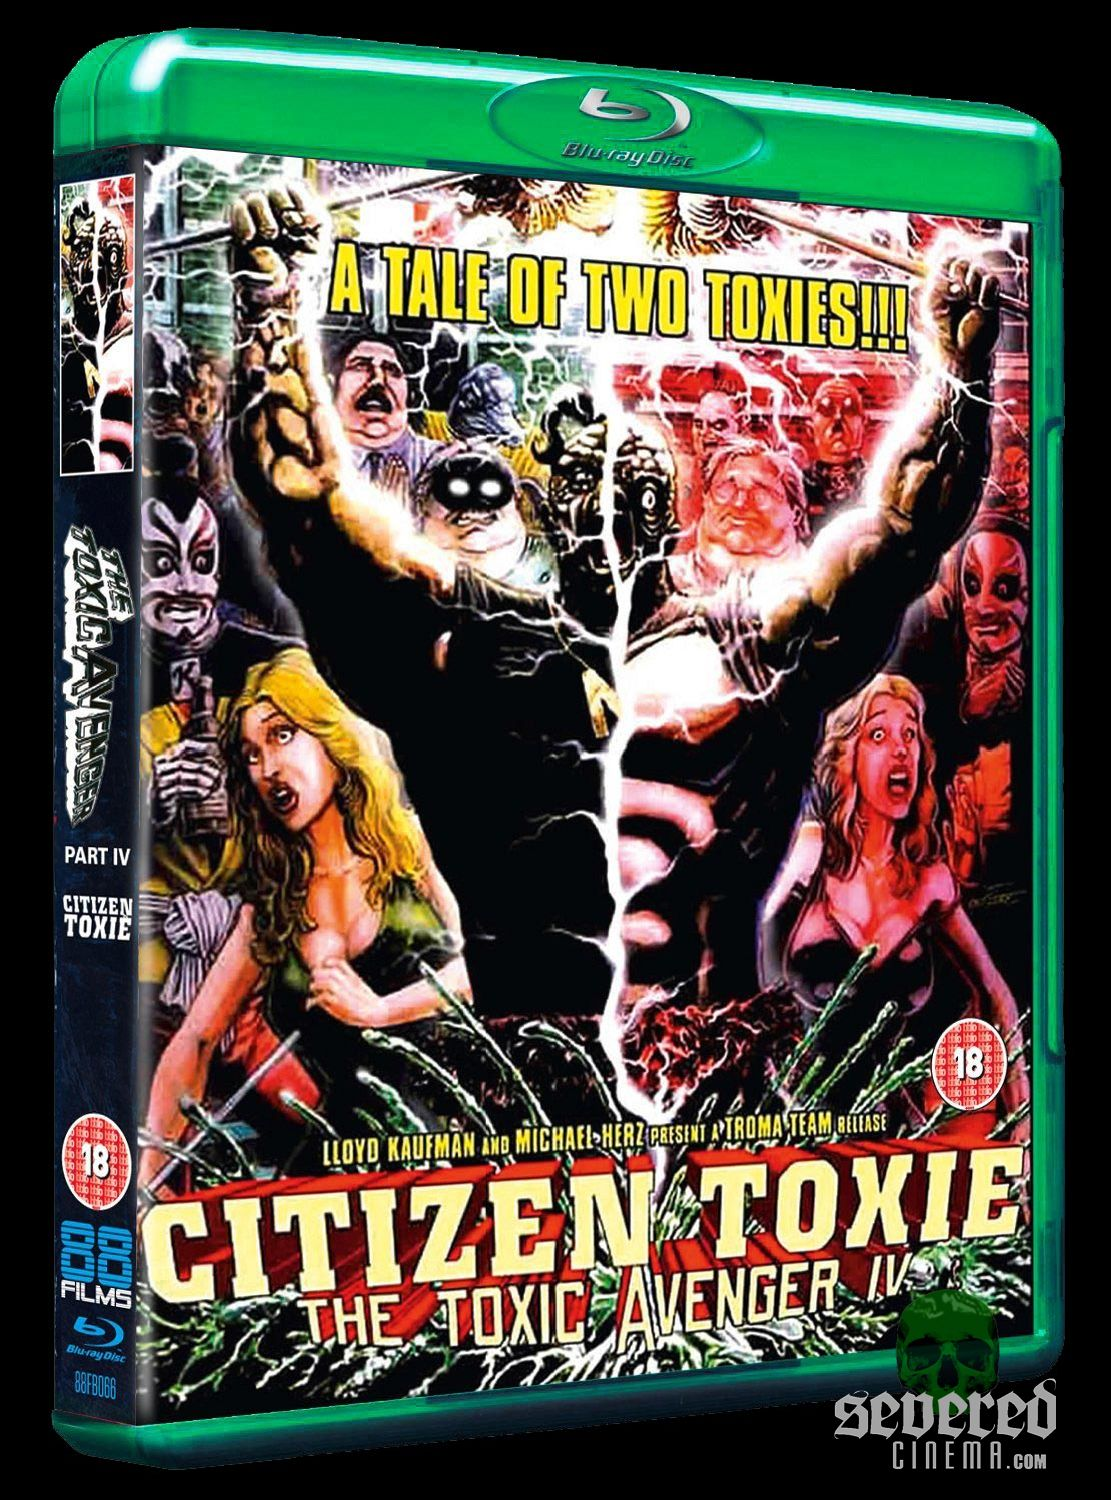 Citizen Toxie Blu-ray from 88 Films on Severed Cinema